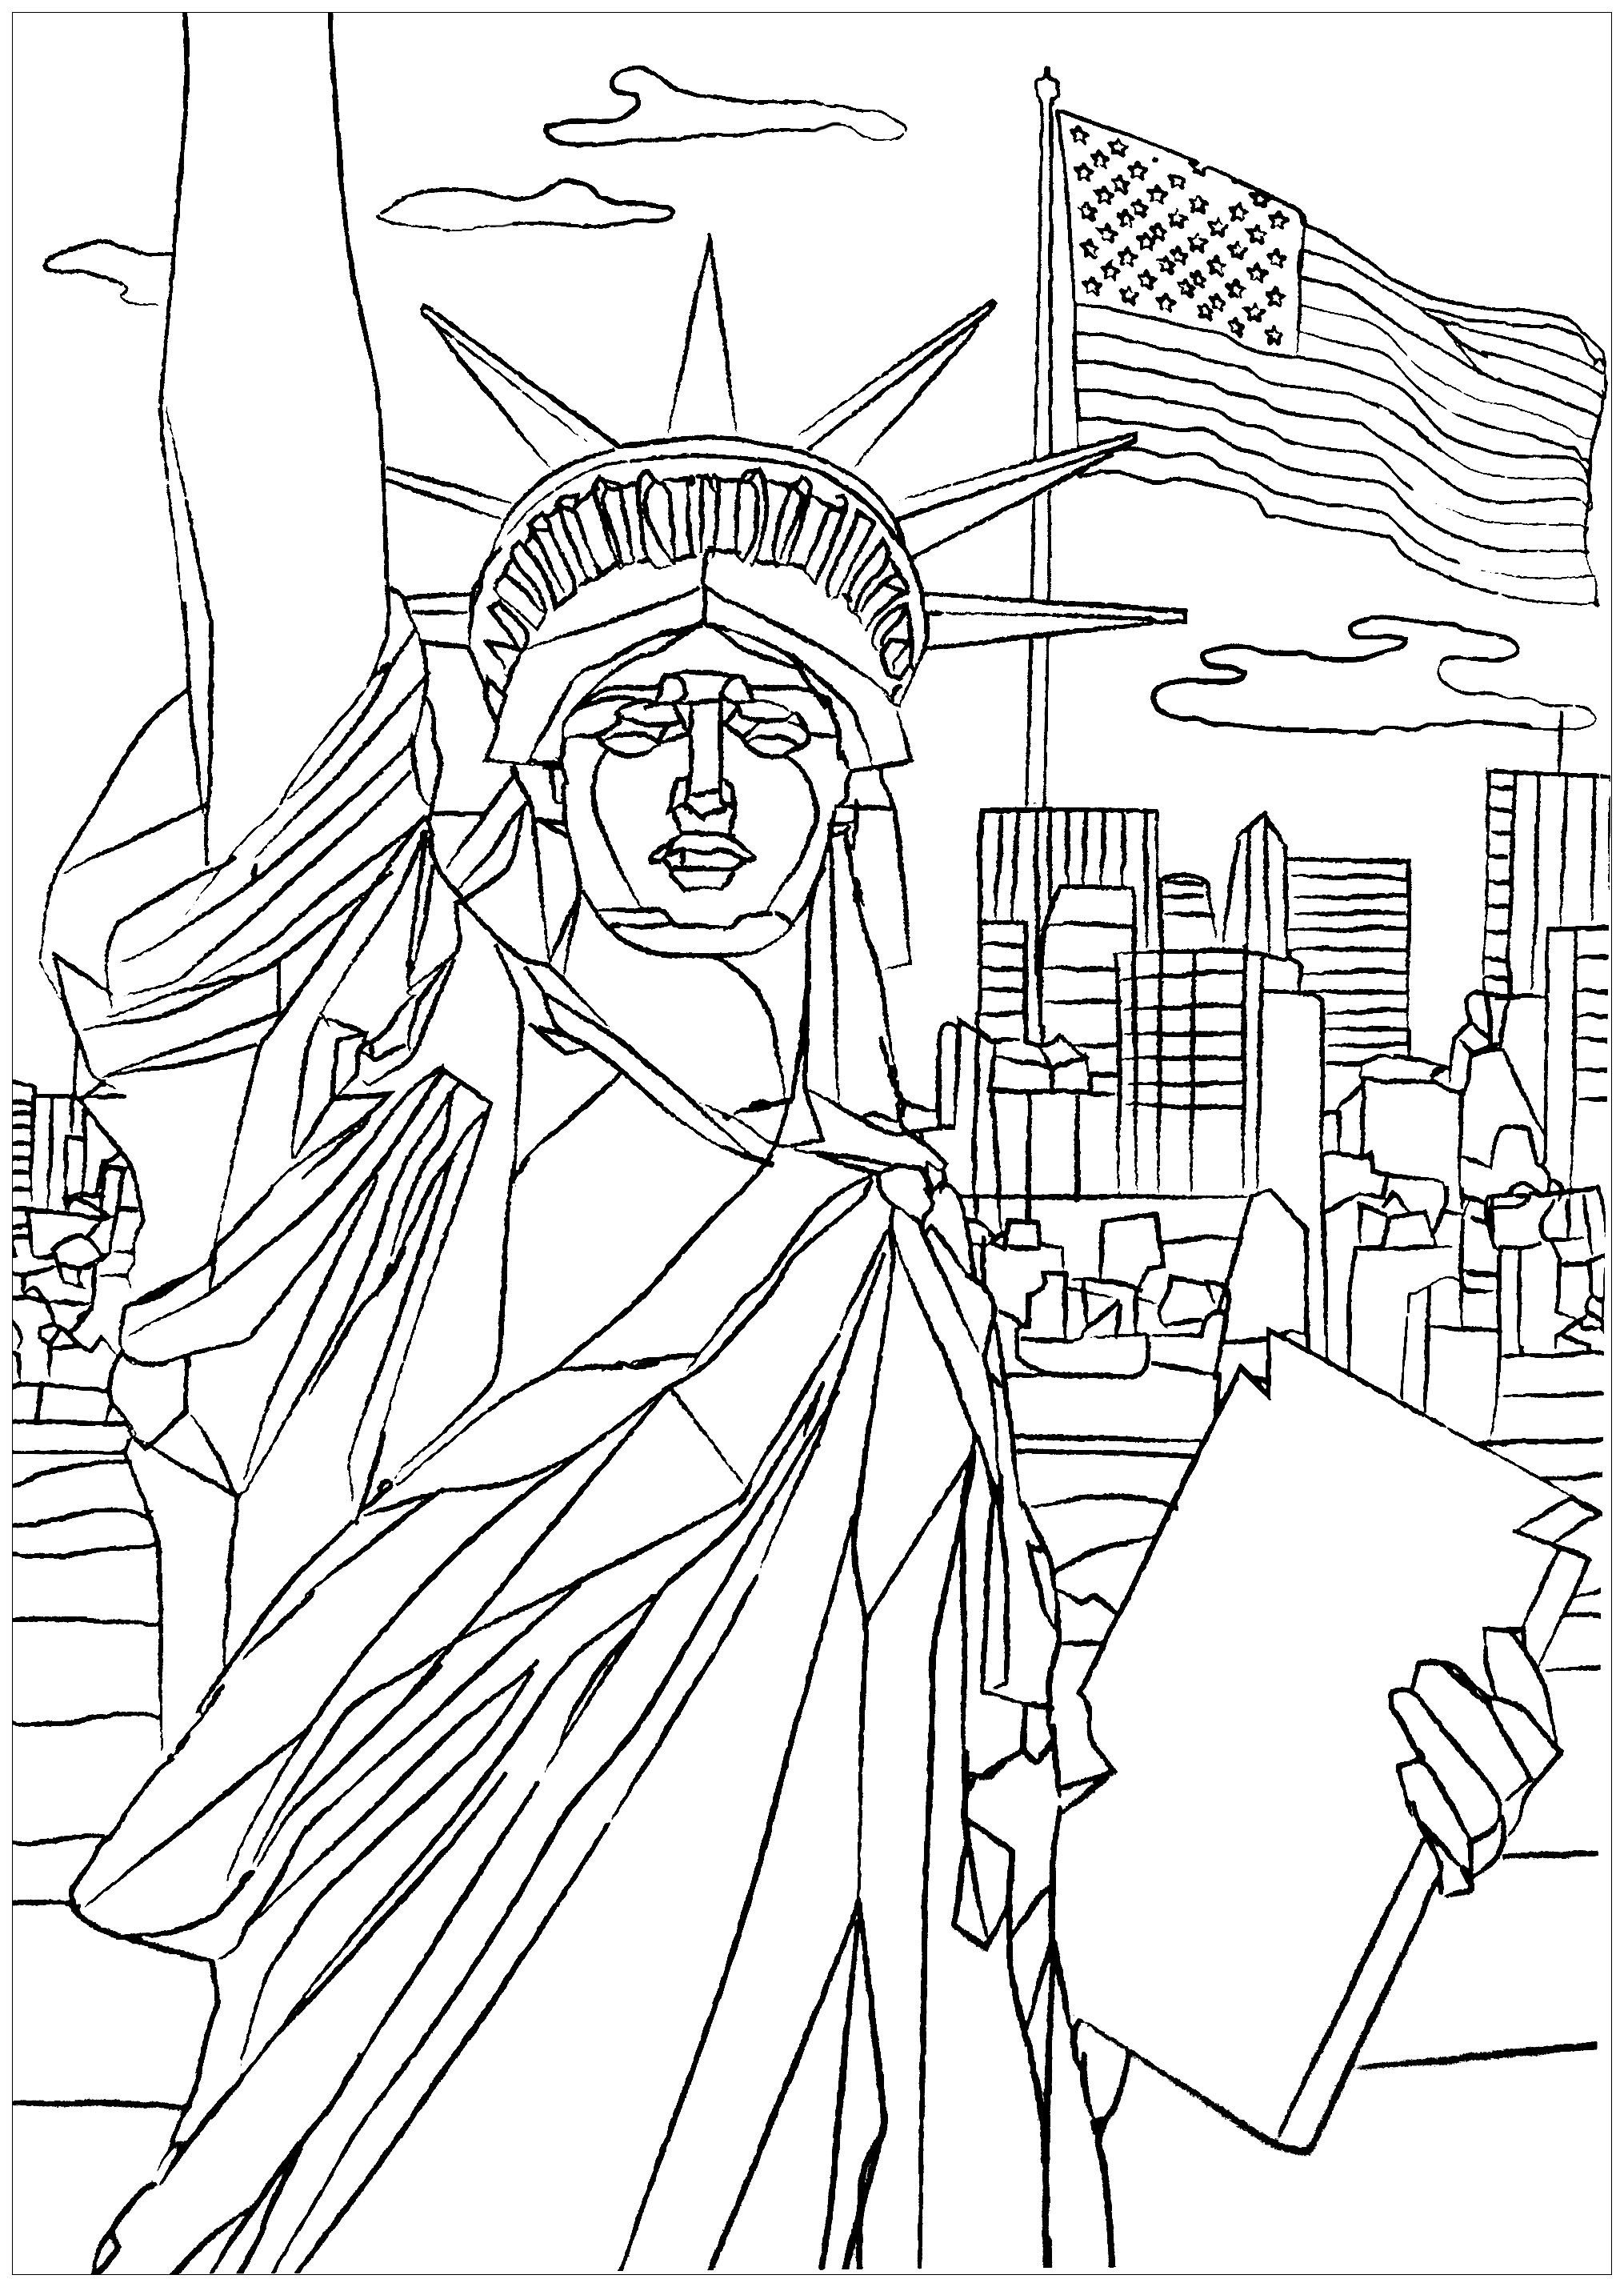 'The Statue of Liberty Enlightening the World' was a gift of friendship from the people of France to the United States